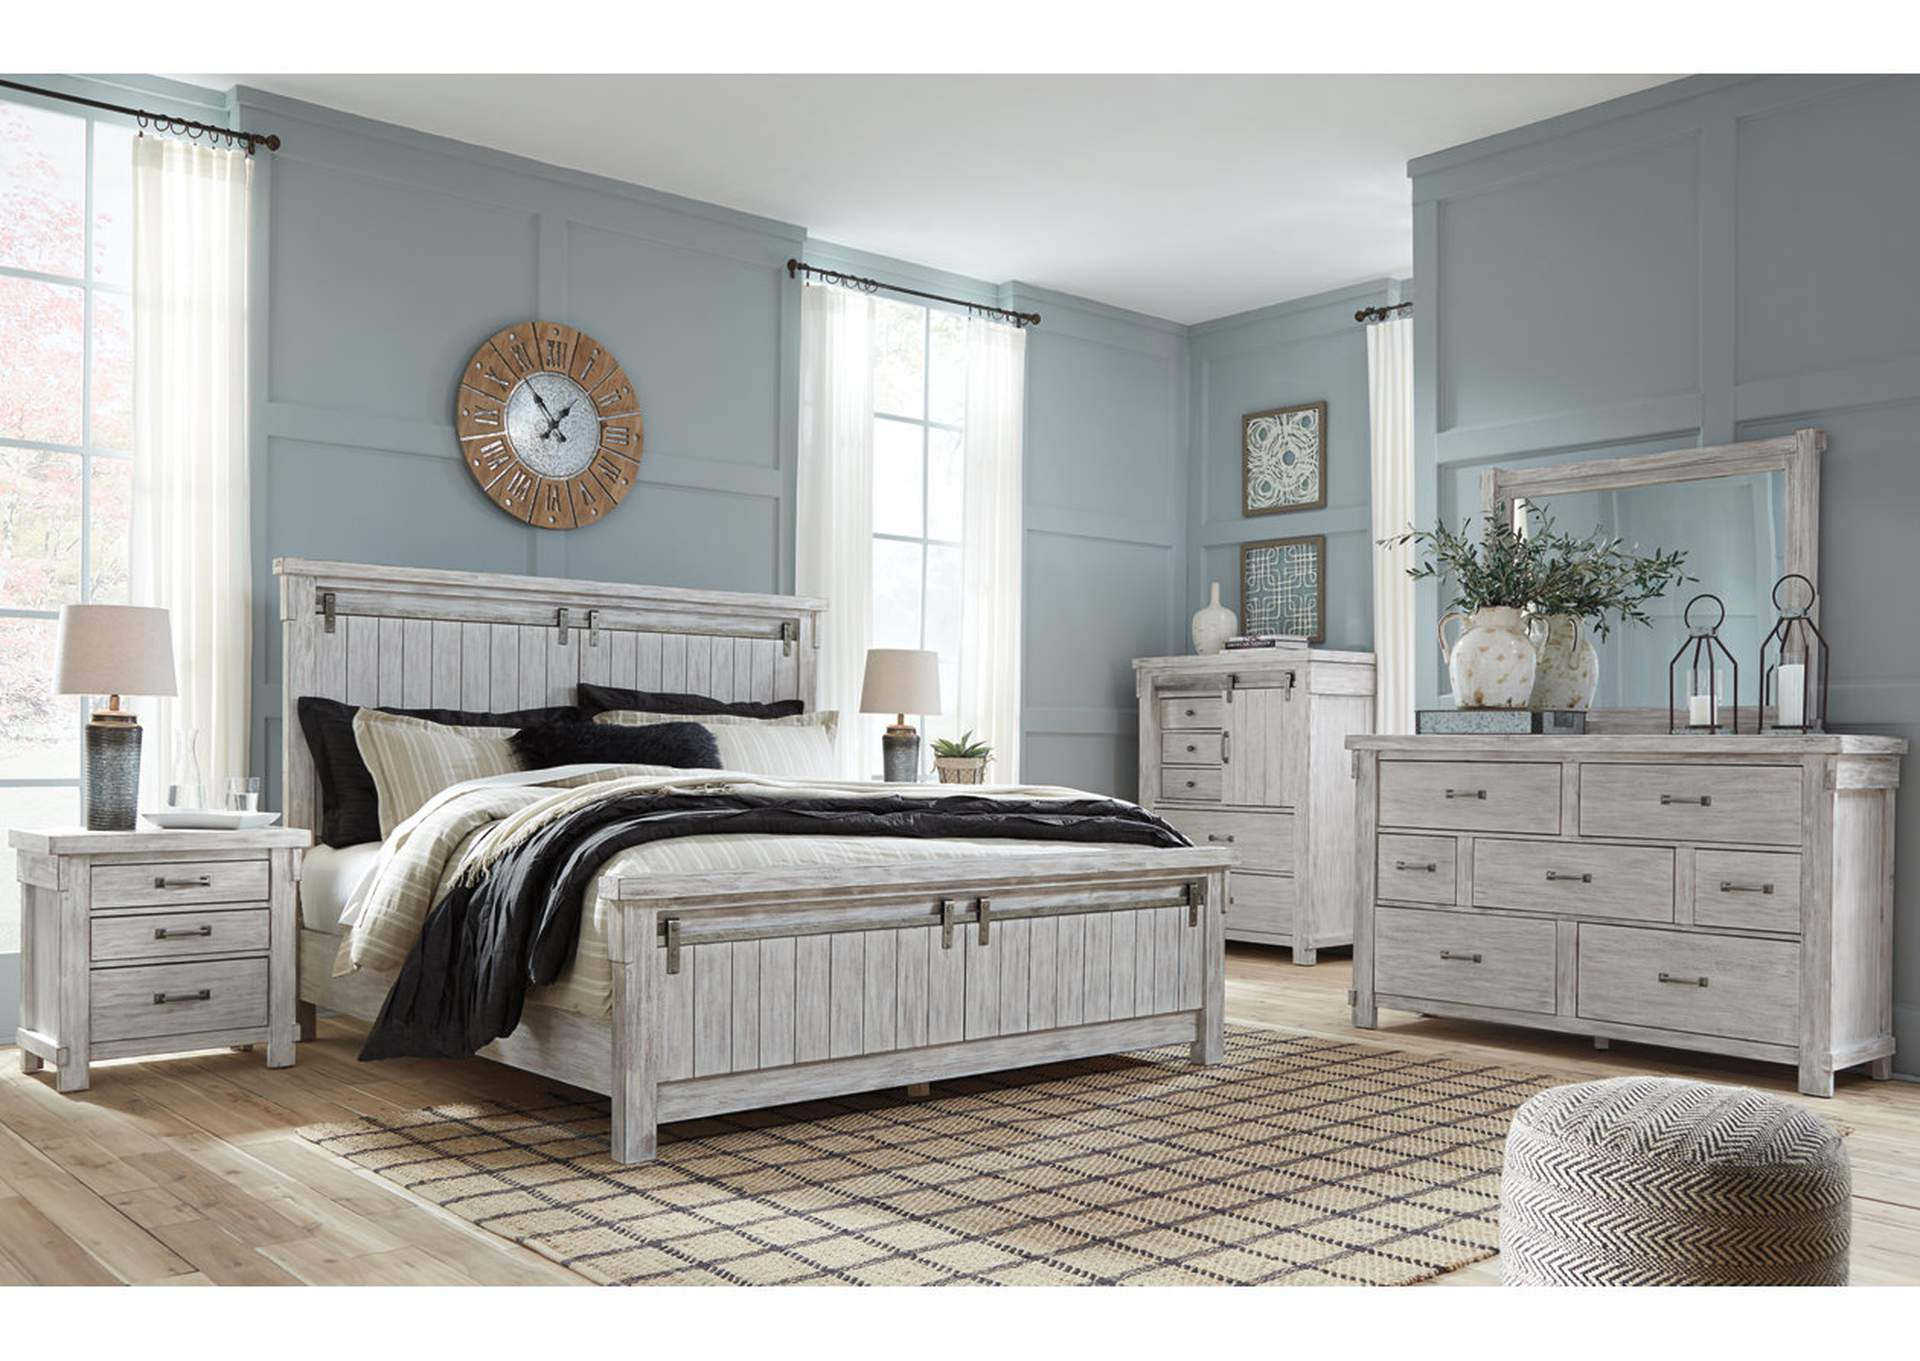 Brashland White King Panel Bed w/Dresser and Mirror,Signature Design By Ashley